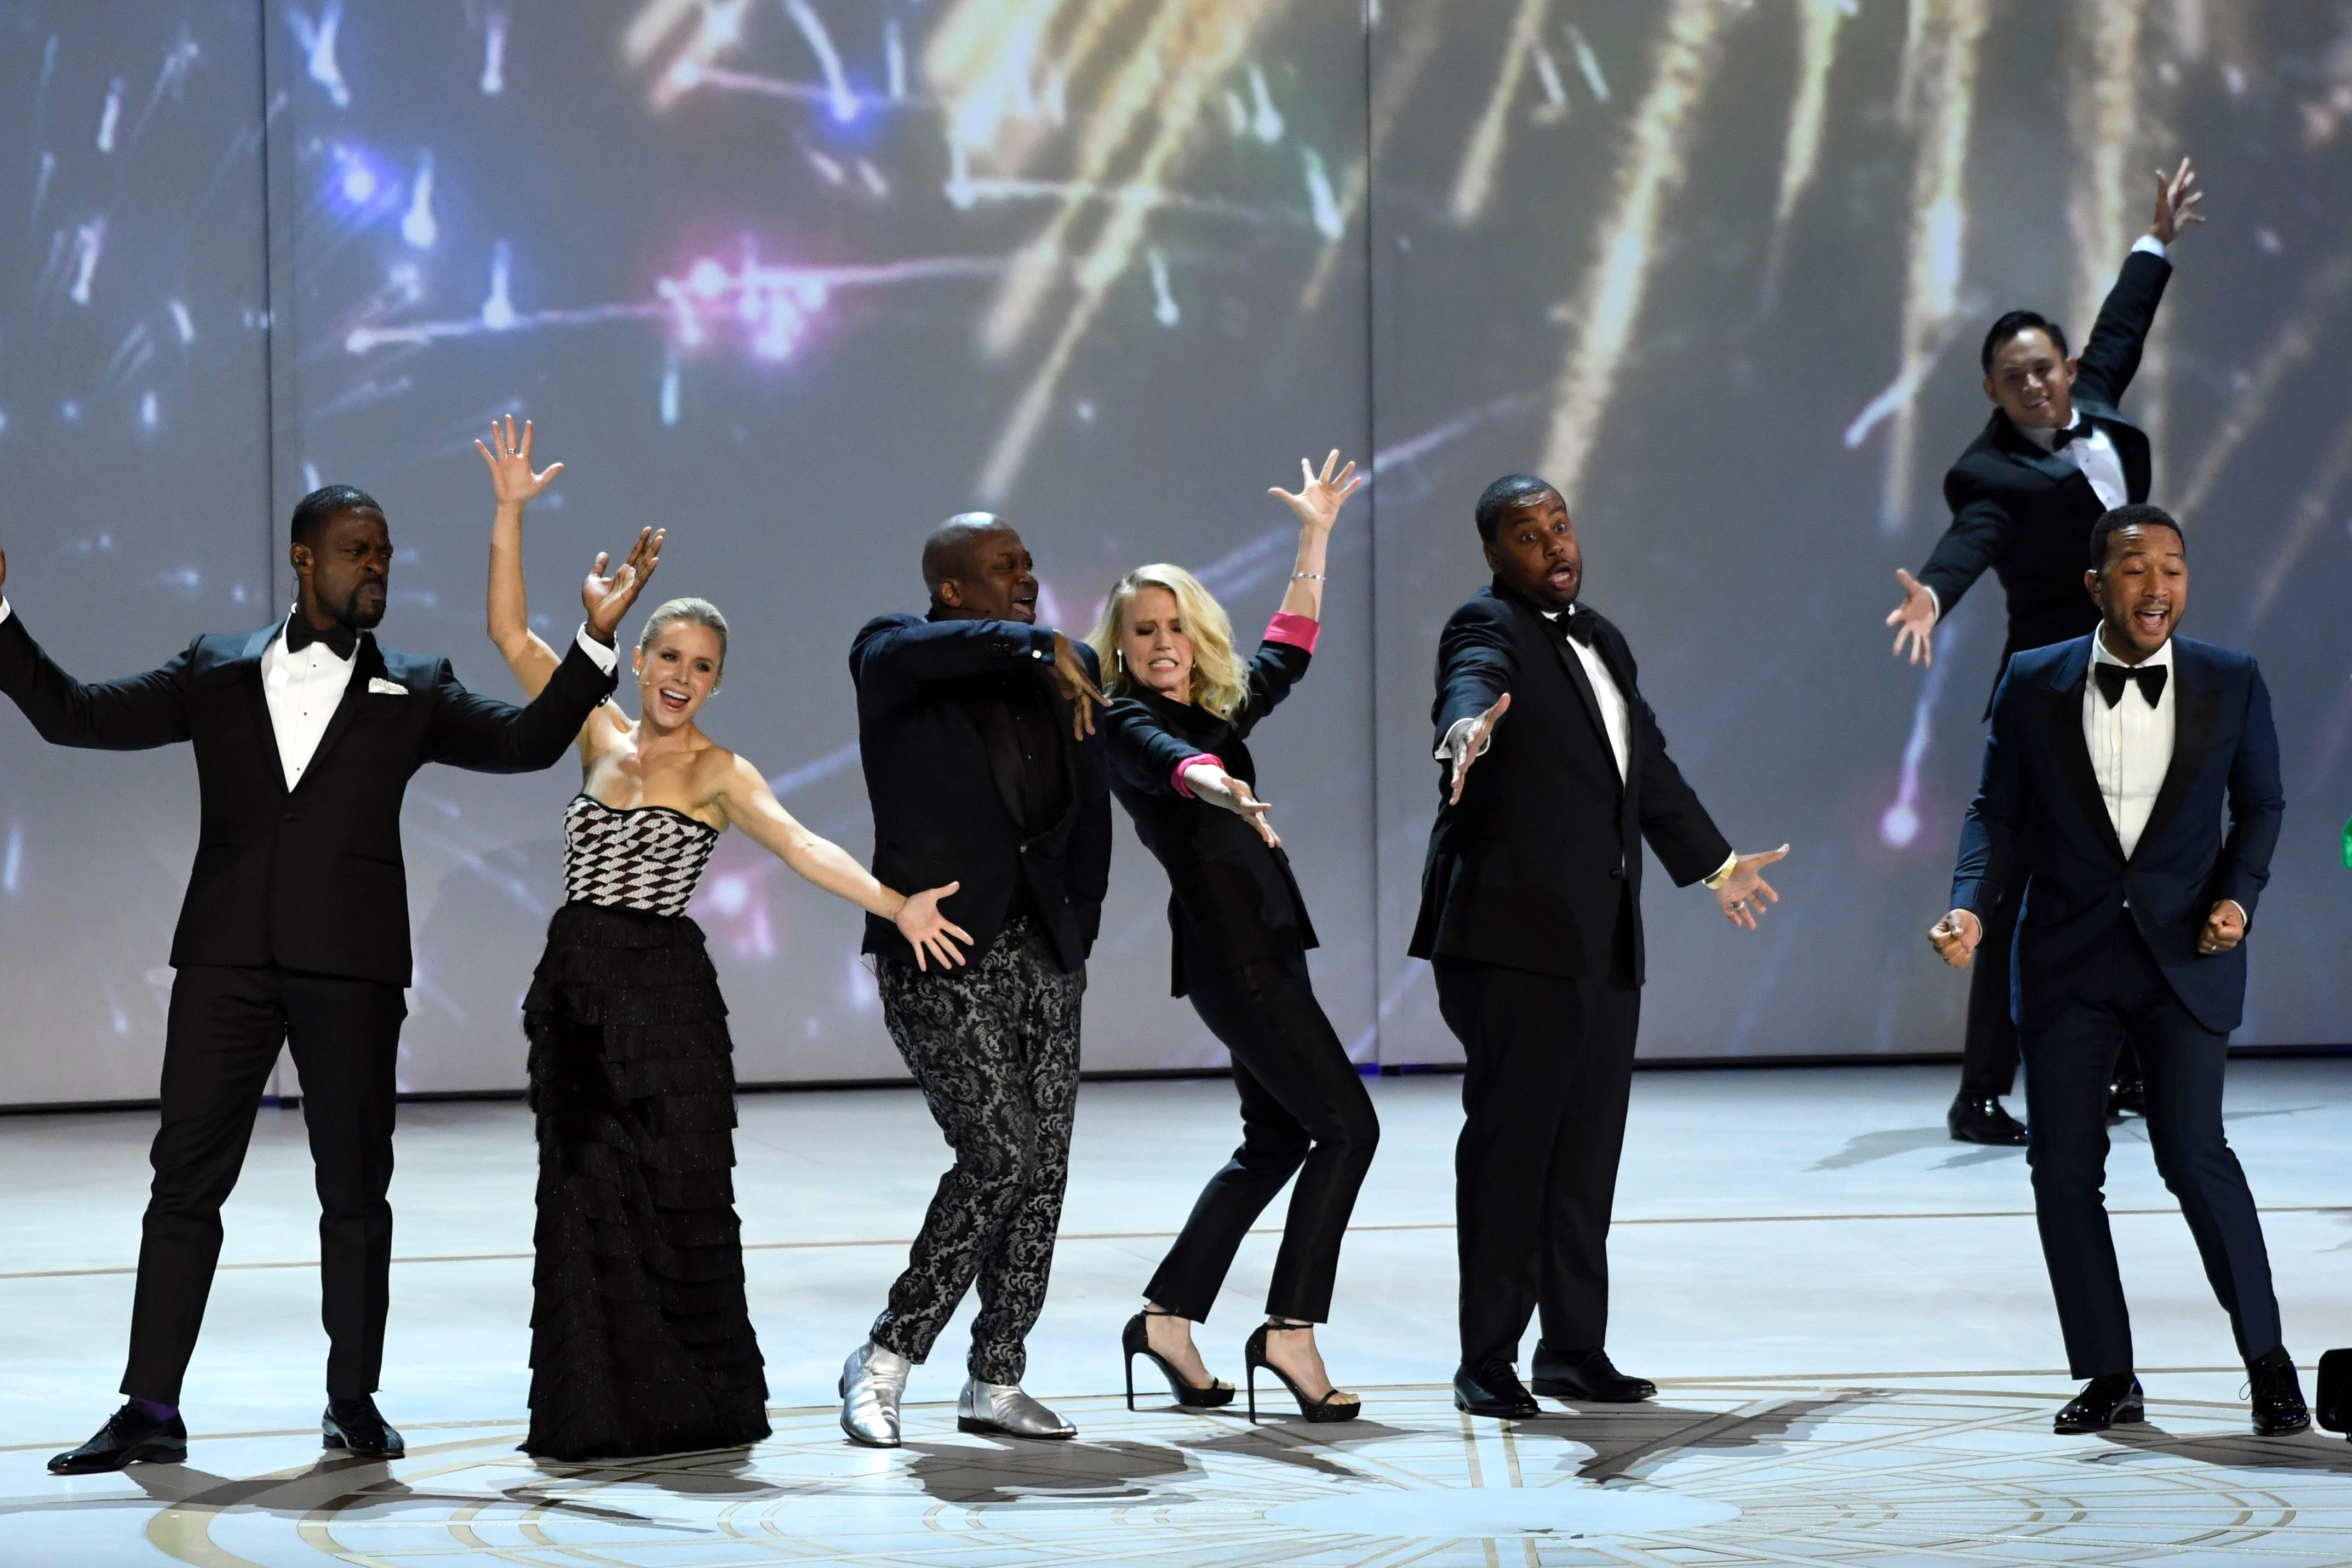 Sterling K. Brown, Kristen Bell, Tituss Burgess, Kate McKinnon, Kenan Thompson, John Legend. Sterling K. Brown, from left, Kristen Bell, Tituss Burgess, Kate McKinnon, Kenan Thompson, and John Legend perform on stage at the 70th Primetime Emmy Awards, at the Microsoft Theater in Los Angeles2018 Primetime Emmy Awards - Show, Los Angeles, USA - 17 Sep 2018